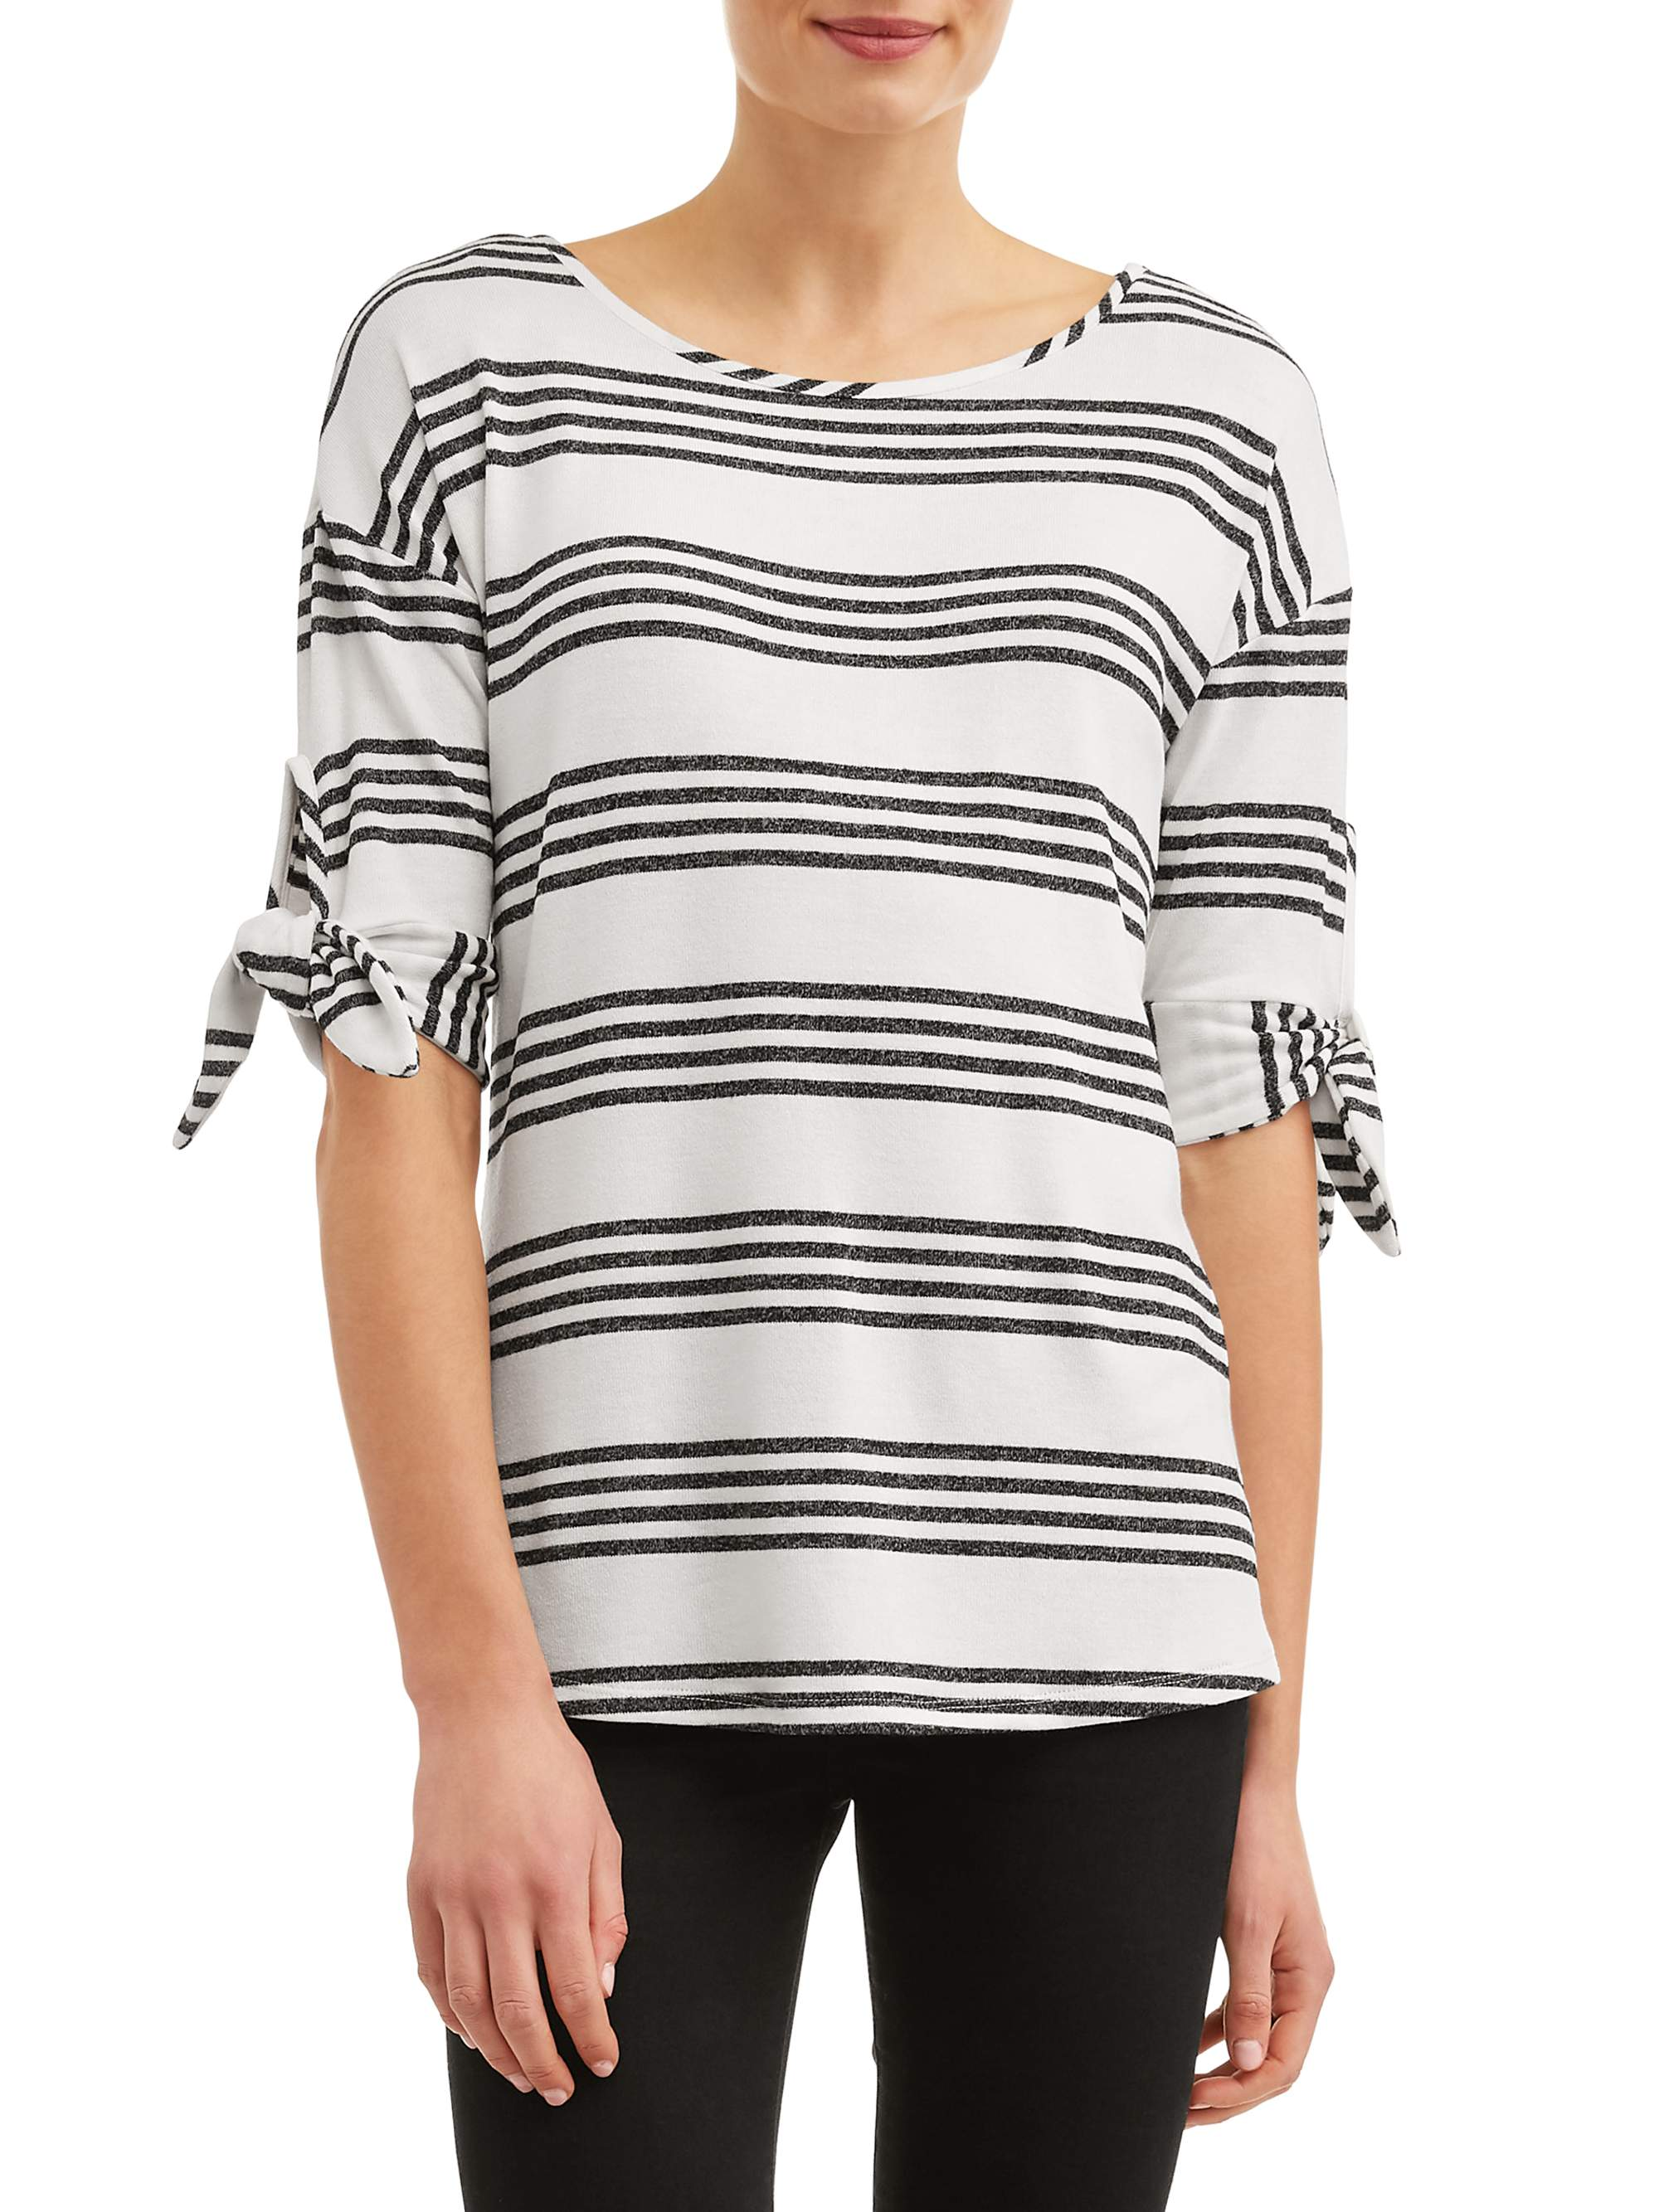 Women's Striped 3/4 Tie Sleeve Top